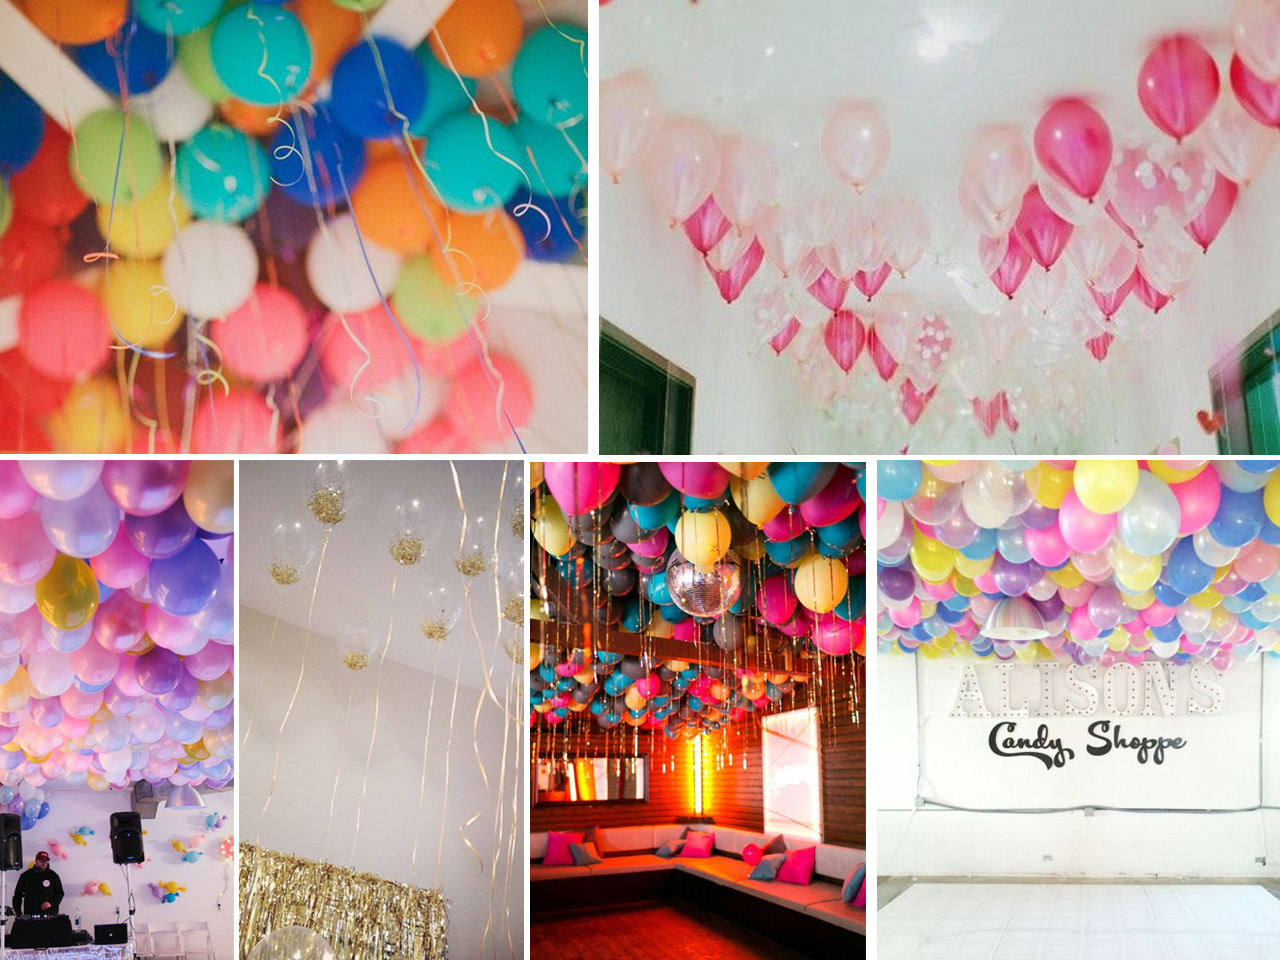 Ideas Para Decorar Salones De Fiestas Decoración Con Globos 57 Ideas Increibles Para Fiestas Y Eventos